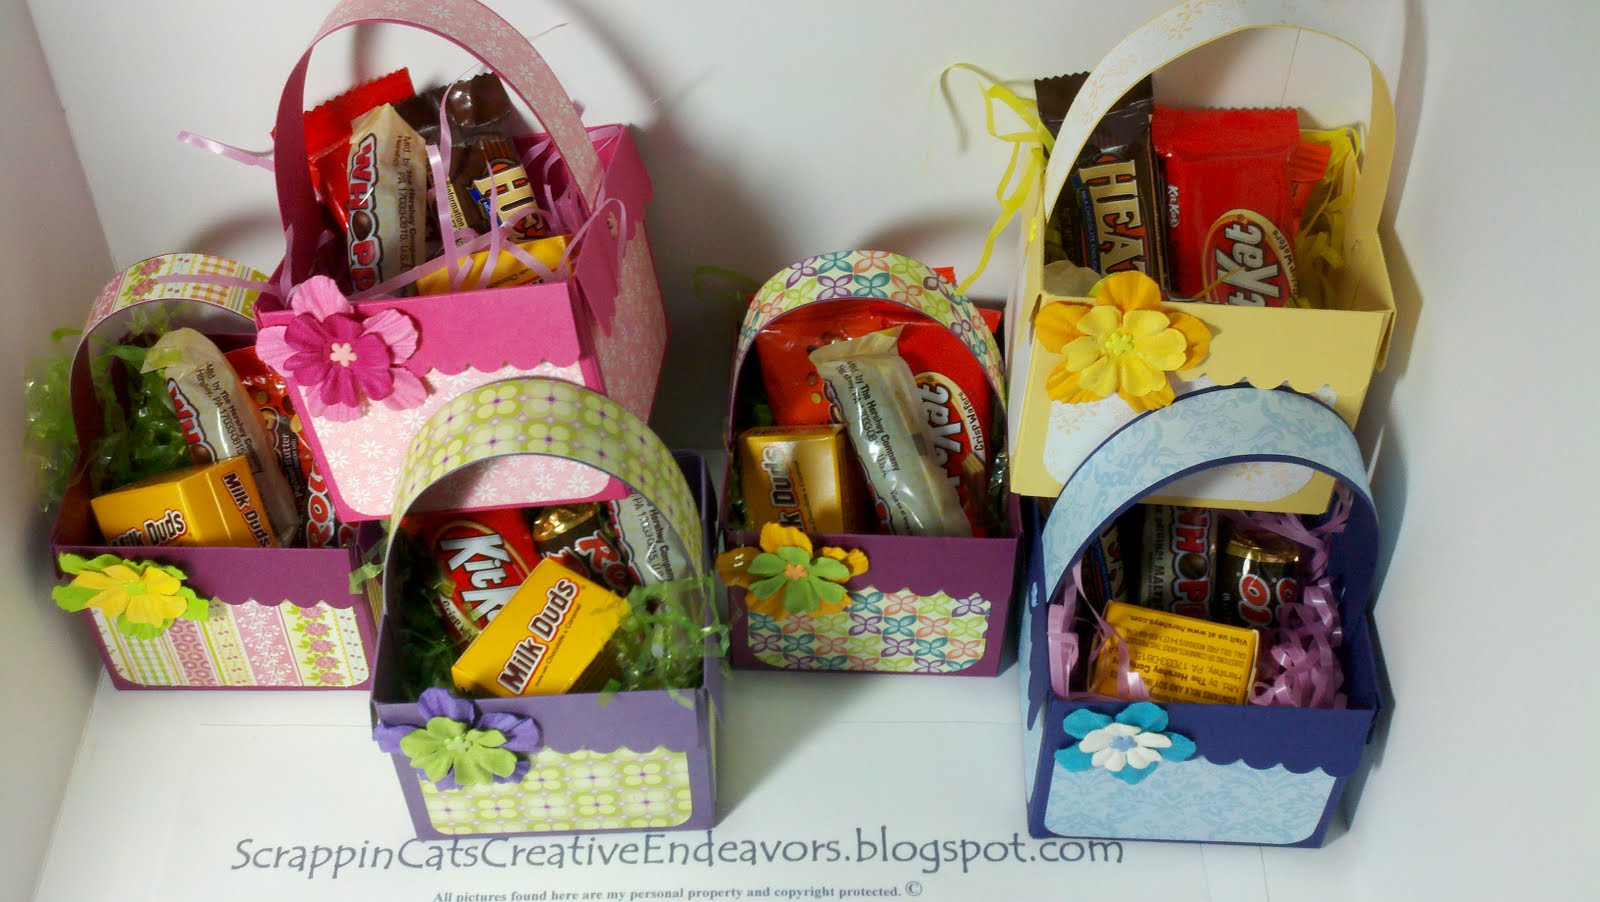 Welcome to Scrappin' Cat's Creative Endeavors: Easter baskets